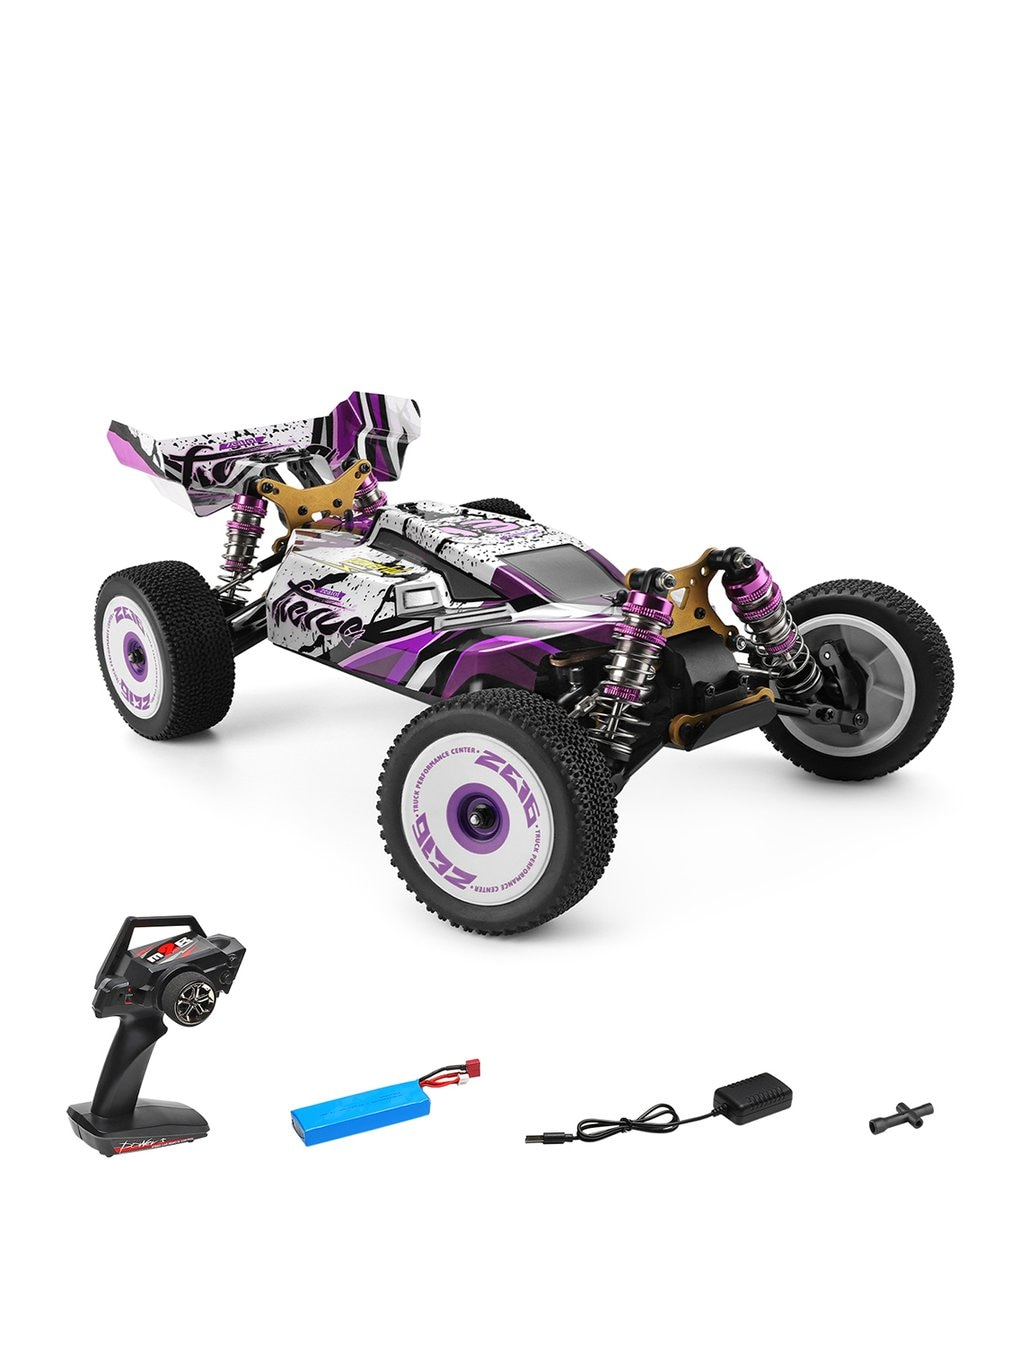 Wltoys XKS 124019 RC Car 1/12 2.4GHz RC 4WD Racing Off-Road Drift Car RTR RC Toys Gift For Kids enlarge